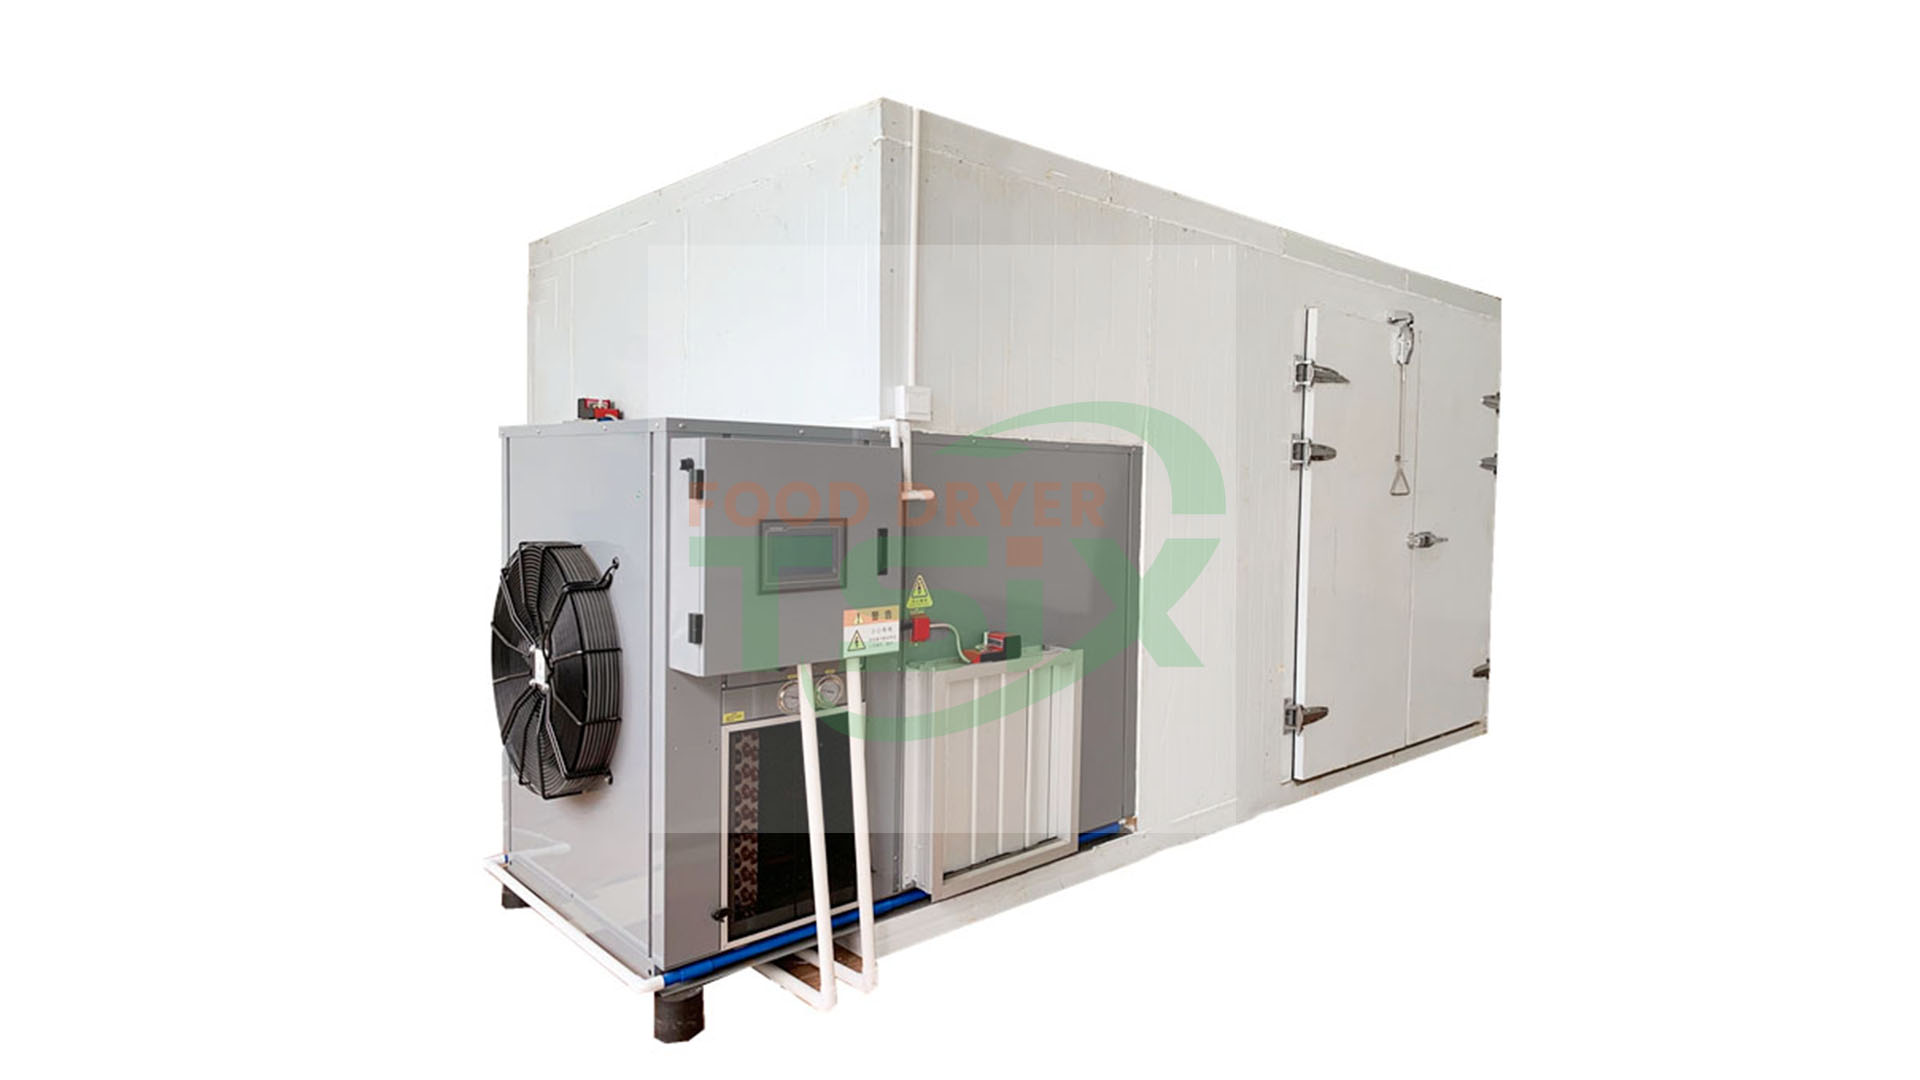 HighQuality 500kg Fruit and Vegetable Dryer Machine with 192 Trays-DPHG080S-G Wholesale-Foshan Shunde Twesix Energy Co.,Ltd